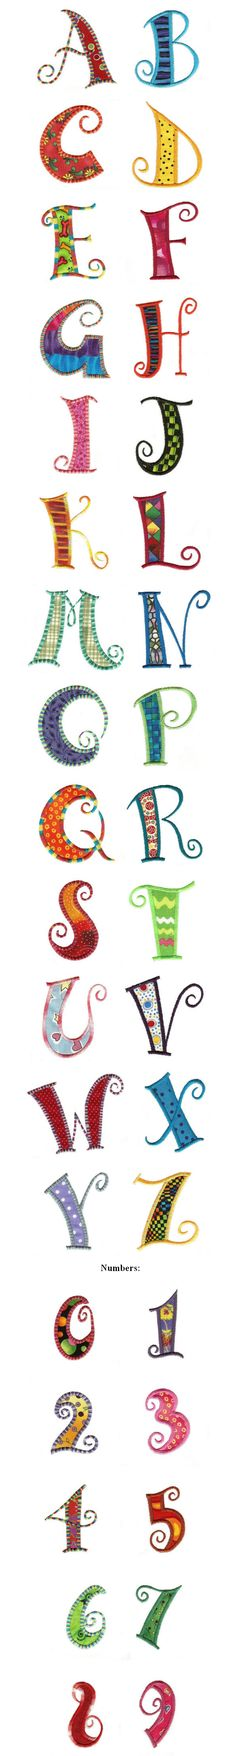 Here is a great curly applique alphabet. Capital letters and numbers included. Exclusive artwork for Designs by JuJu by Christopher Brown This font also inc Embroidery Designs, Embroidery Fonts, Embroidery Applique, Machine Embroidery, Embroidery Alphabet, Doodle Lettering, Creative Lettering, Lettering Styles, Applique Patterns